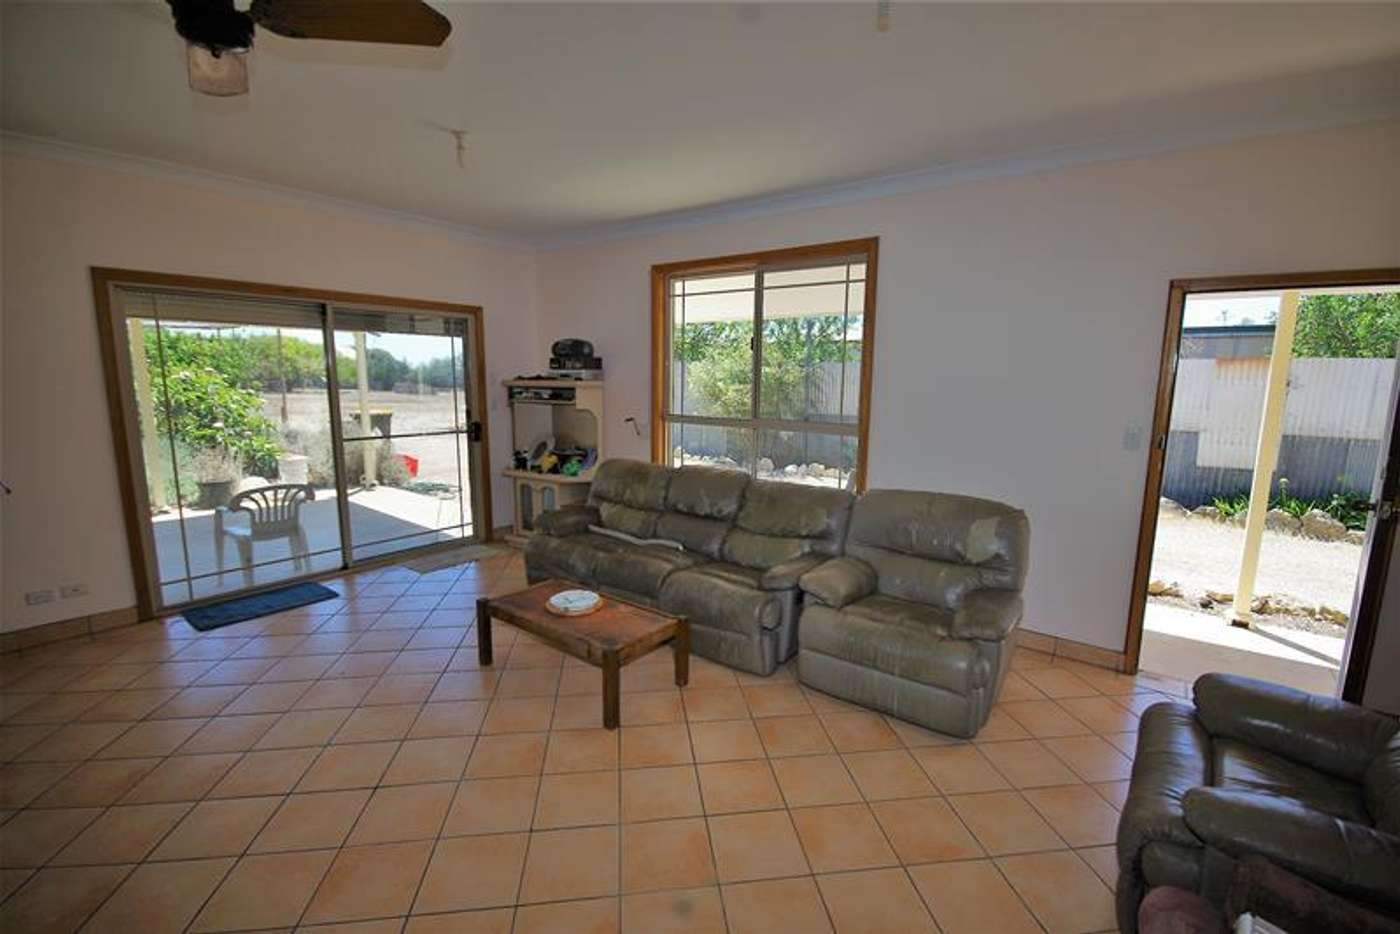 Fifth view of Homely house listing, 32 Park Terrace, Edithburgh SA 5583